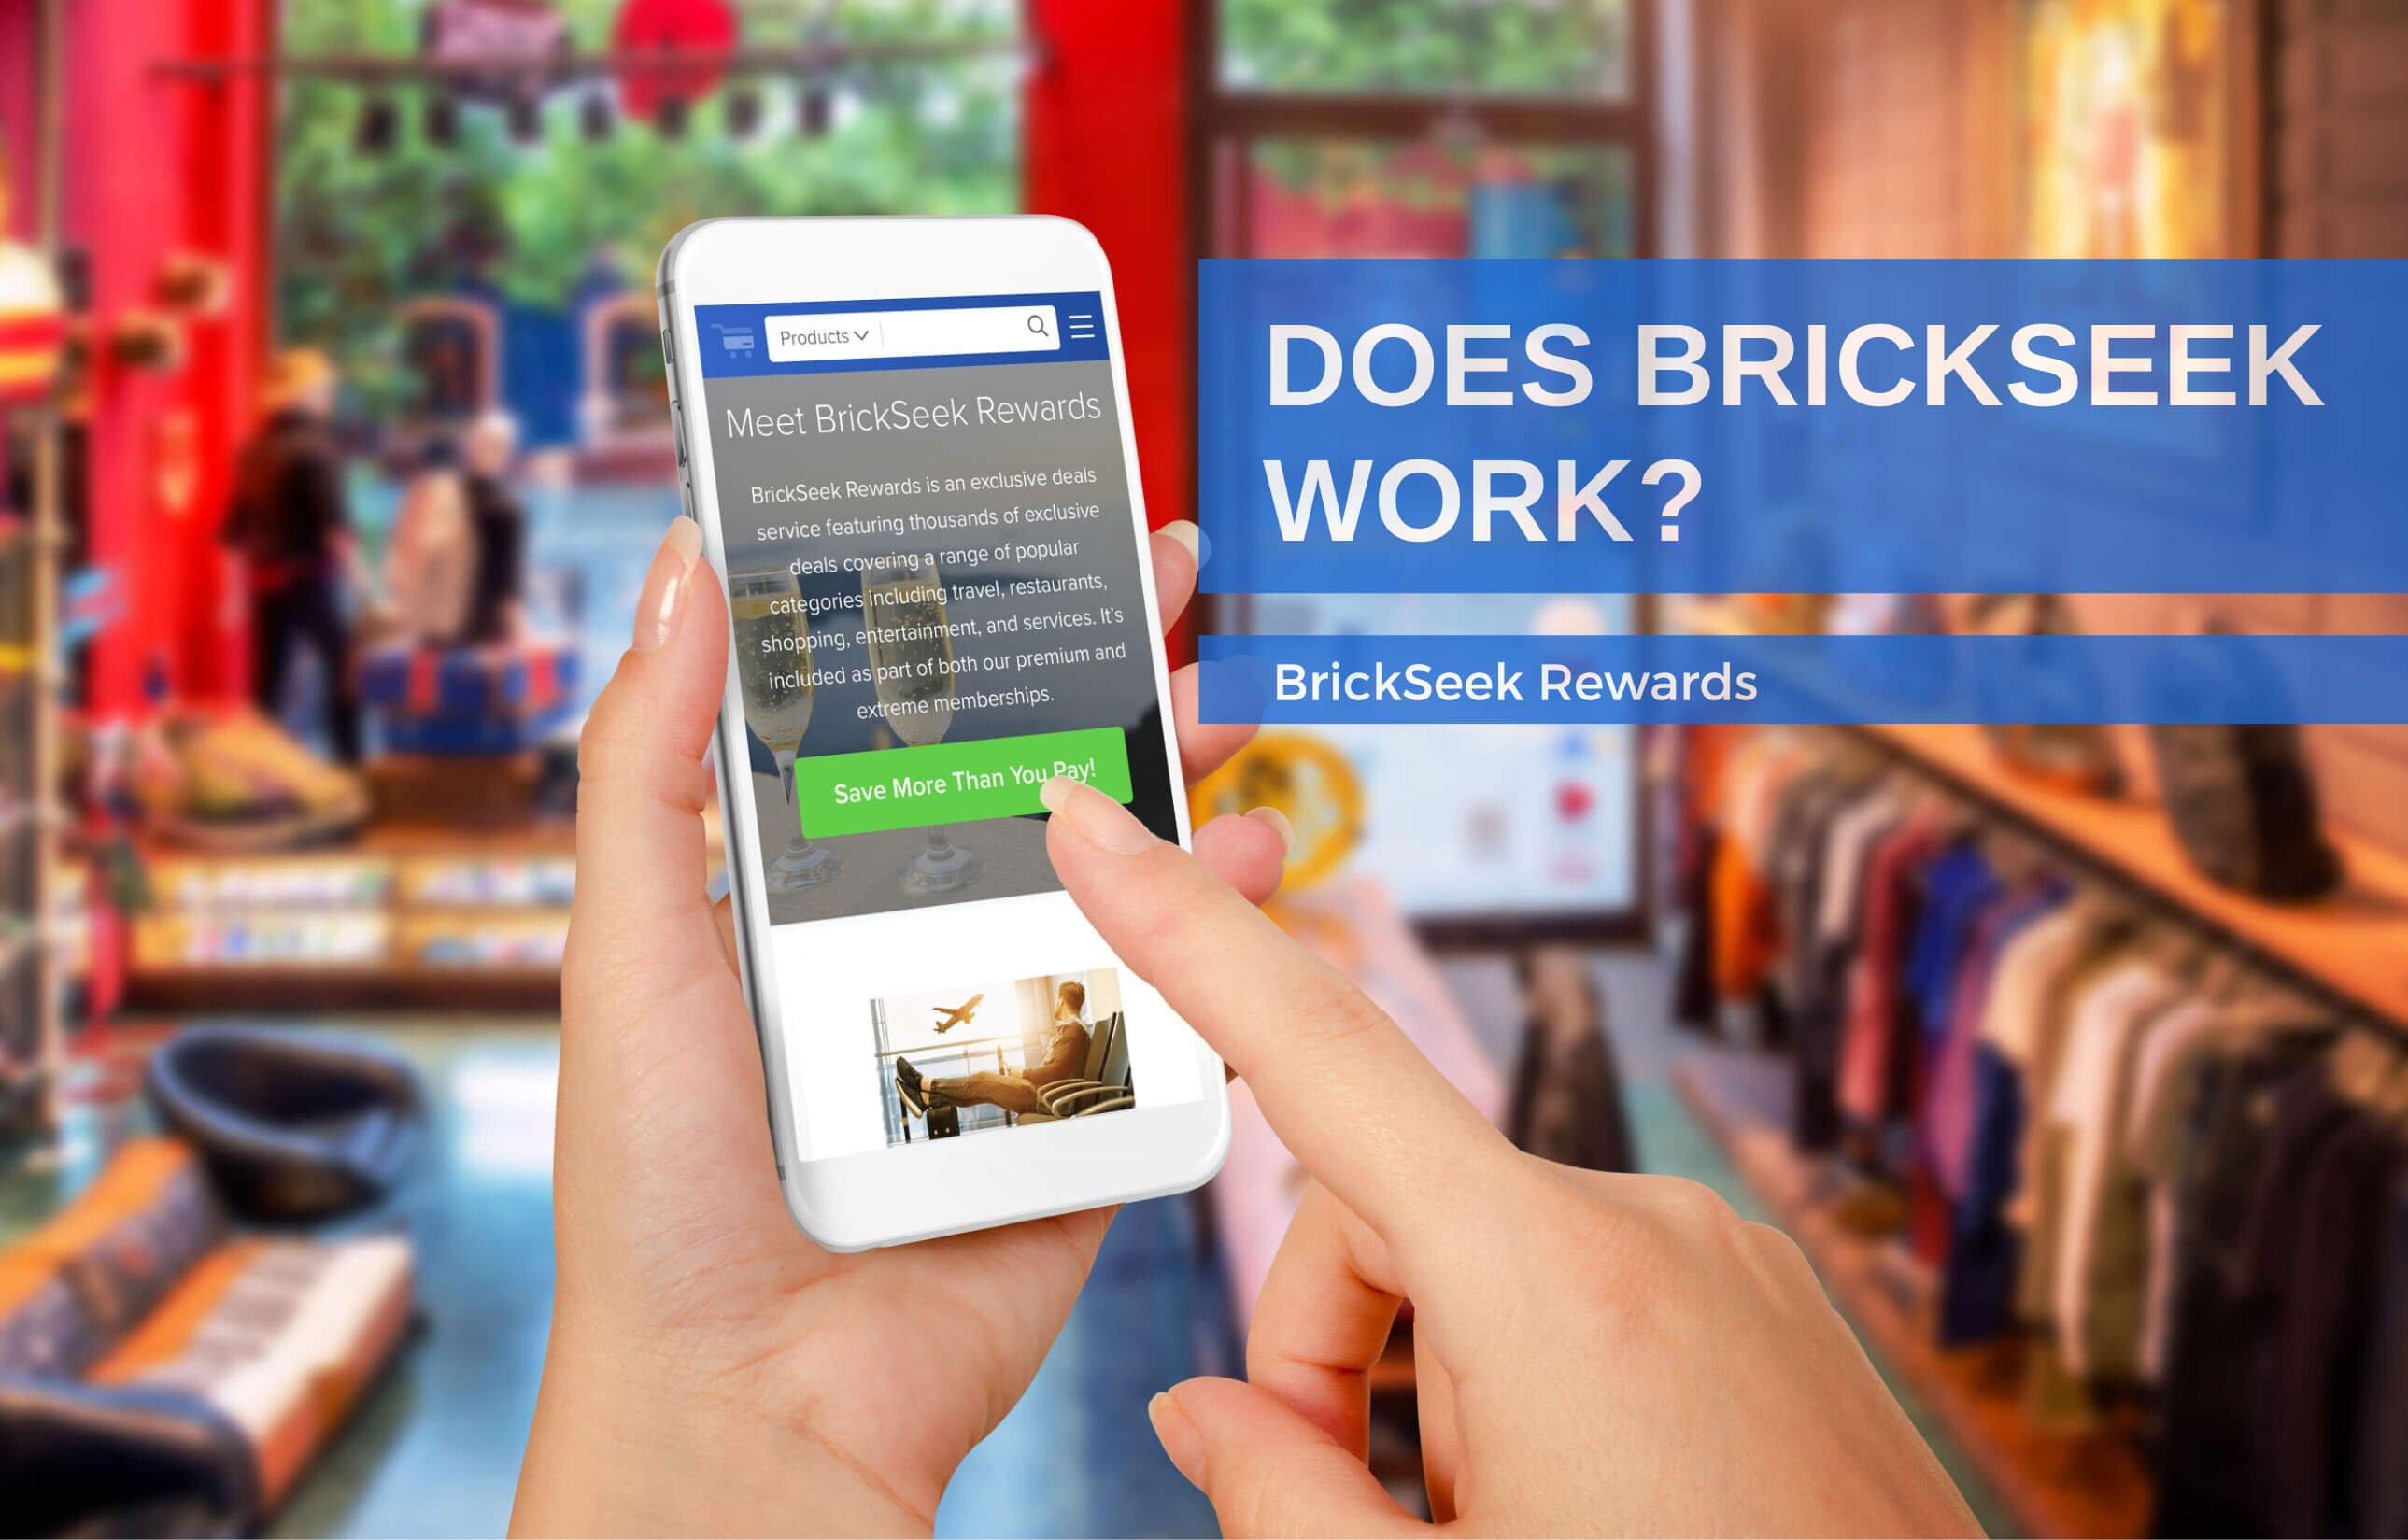 Does BrickSeek Work? – BrickSeek Rewards